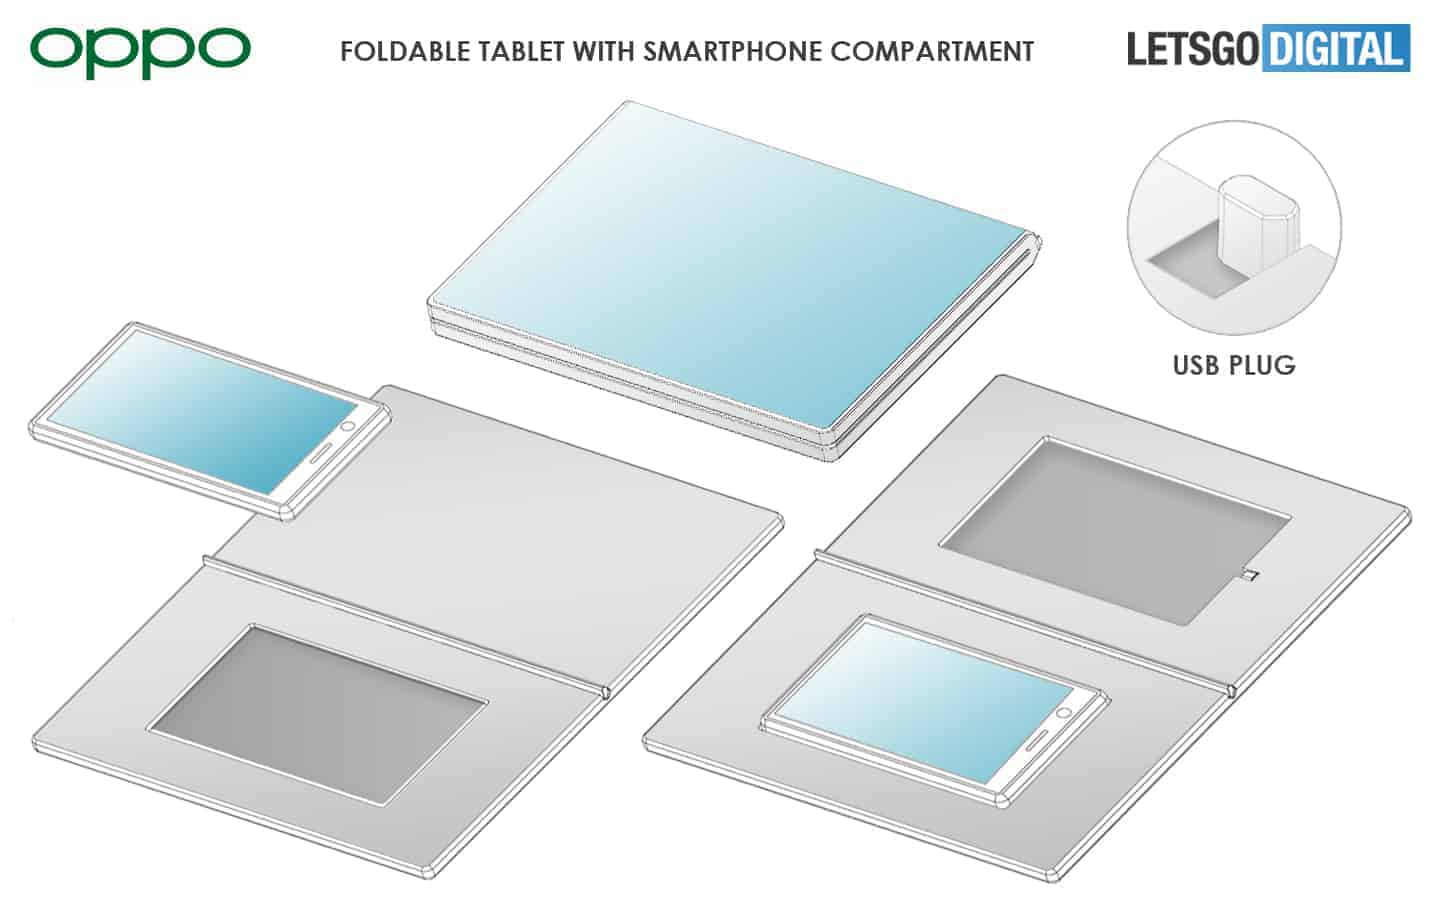 OPPO-foldable-tablet-with-smartphone-dock-patent-4